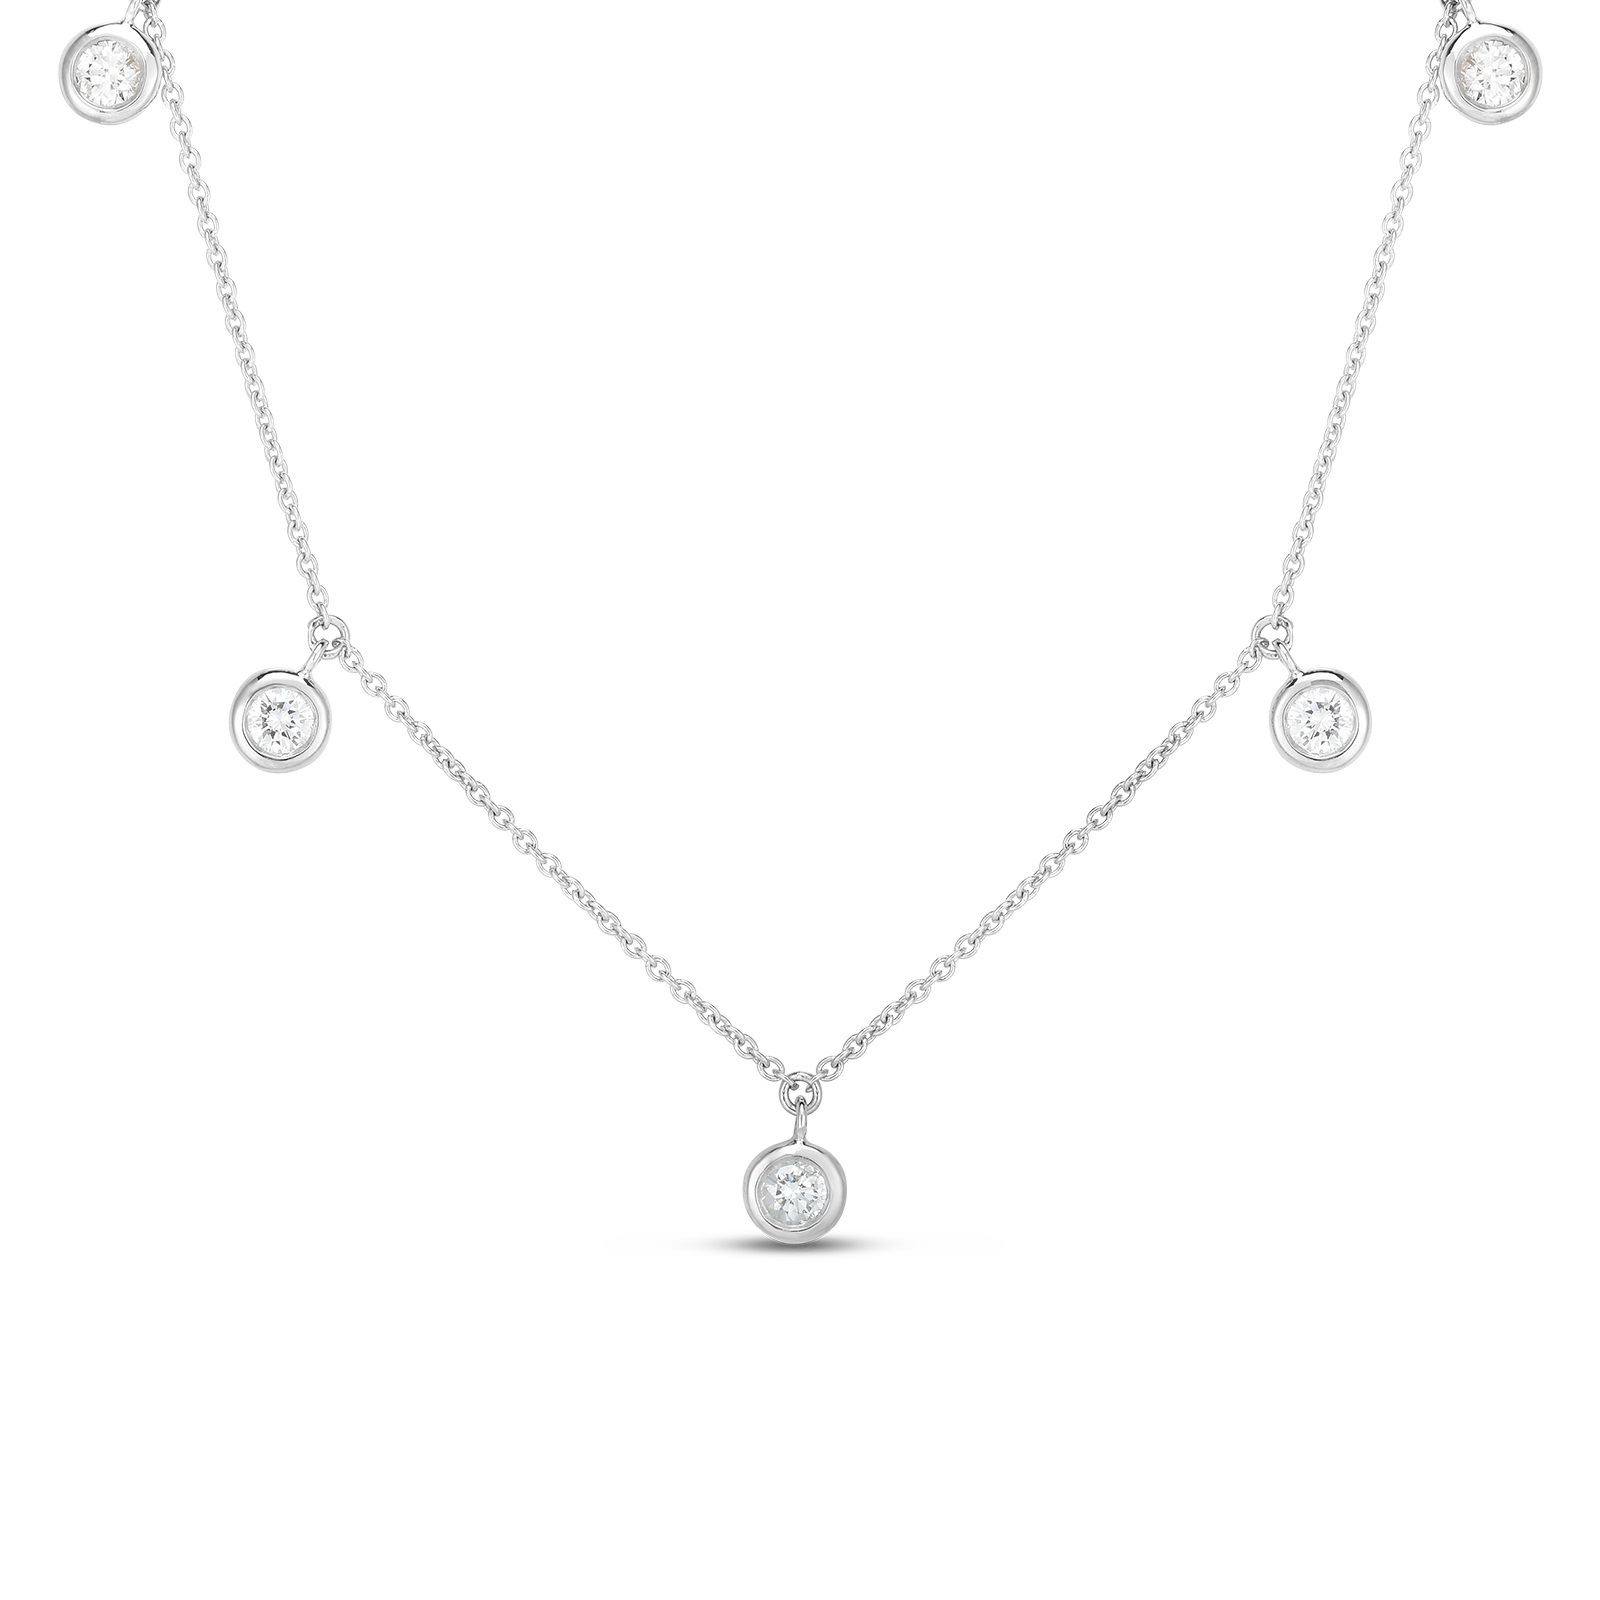 Roberto Coin 18K White Gold .23cts  Diamonds Gold Necklace with Stones 530009AWCHX0